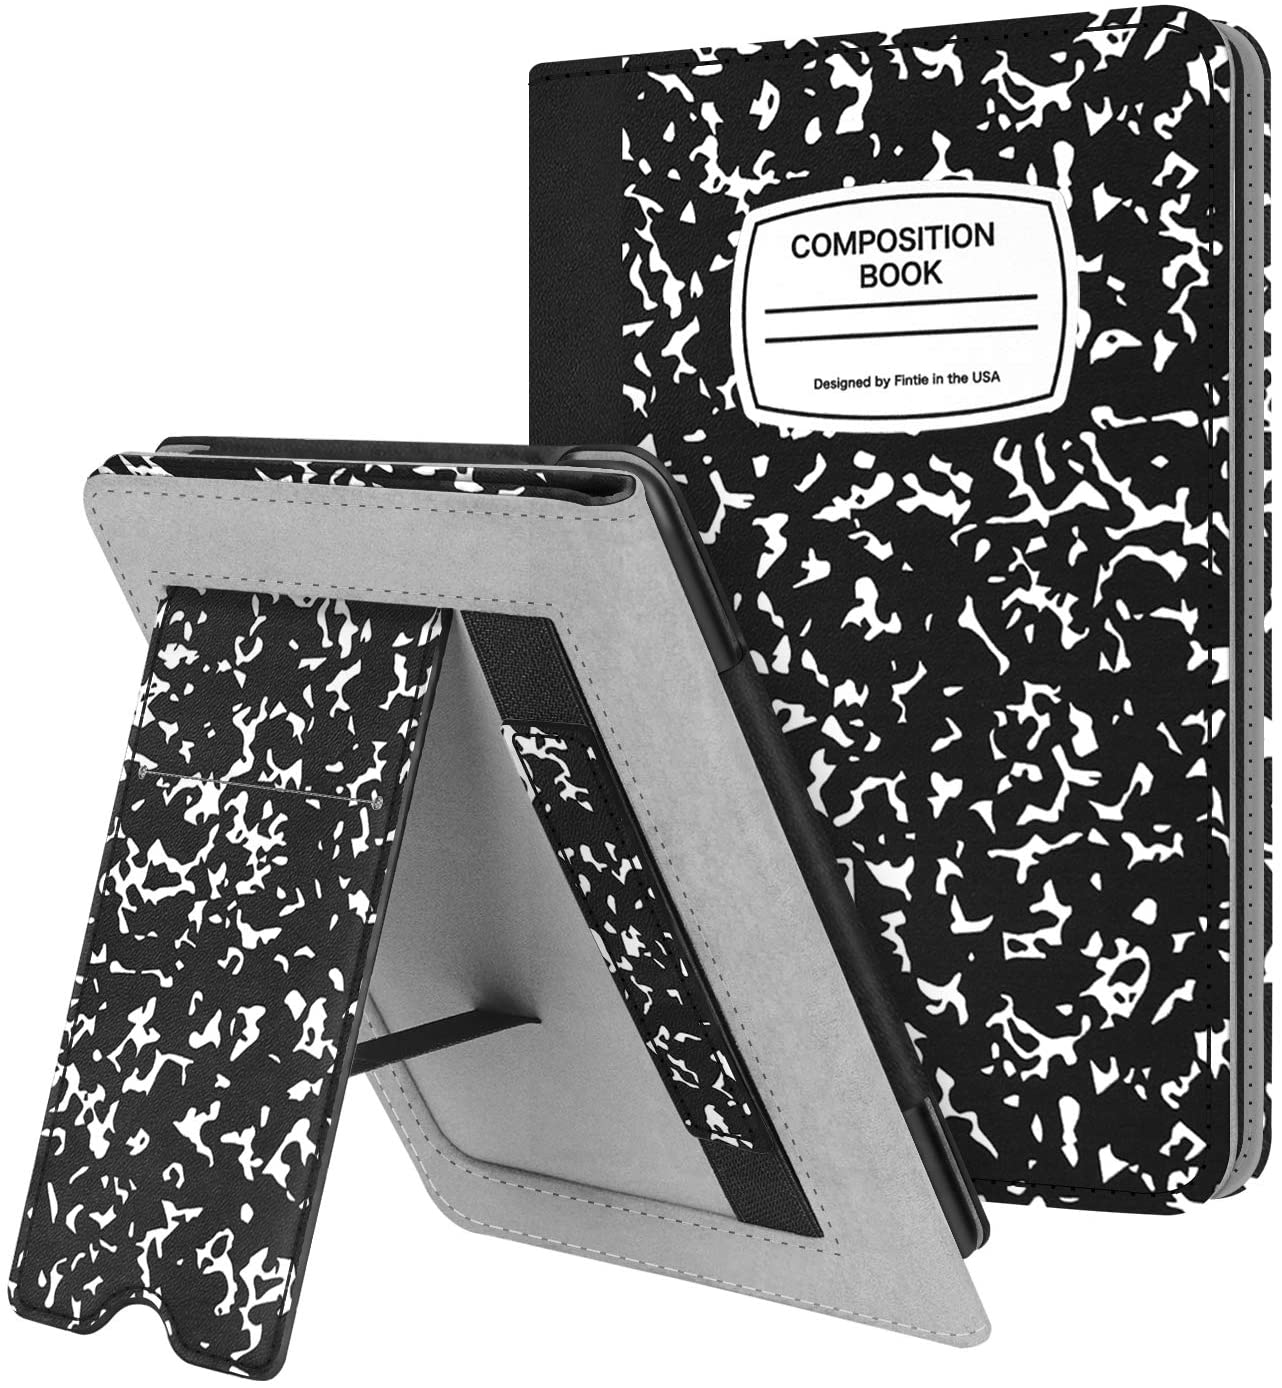 7th Generation will not fit previous generation Kindle devices Protective Leather Cover for Kindle Black